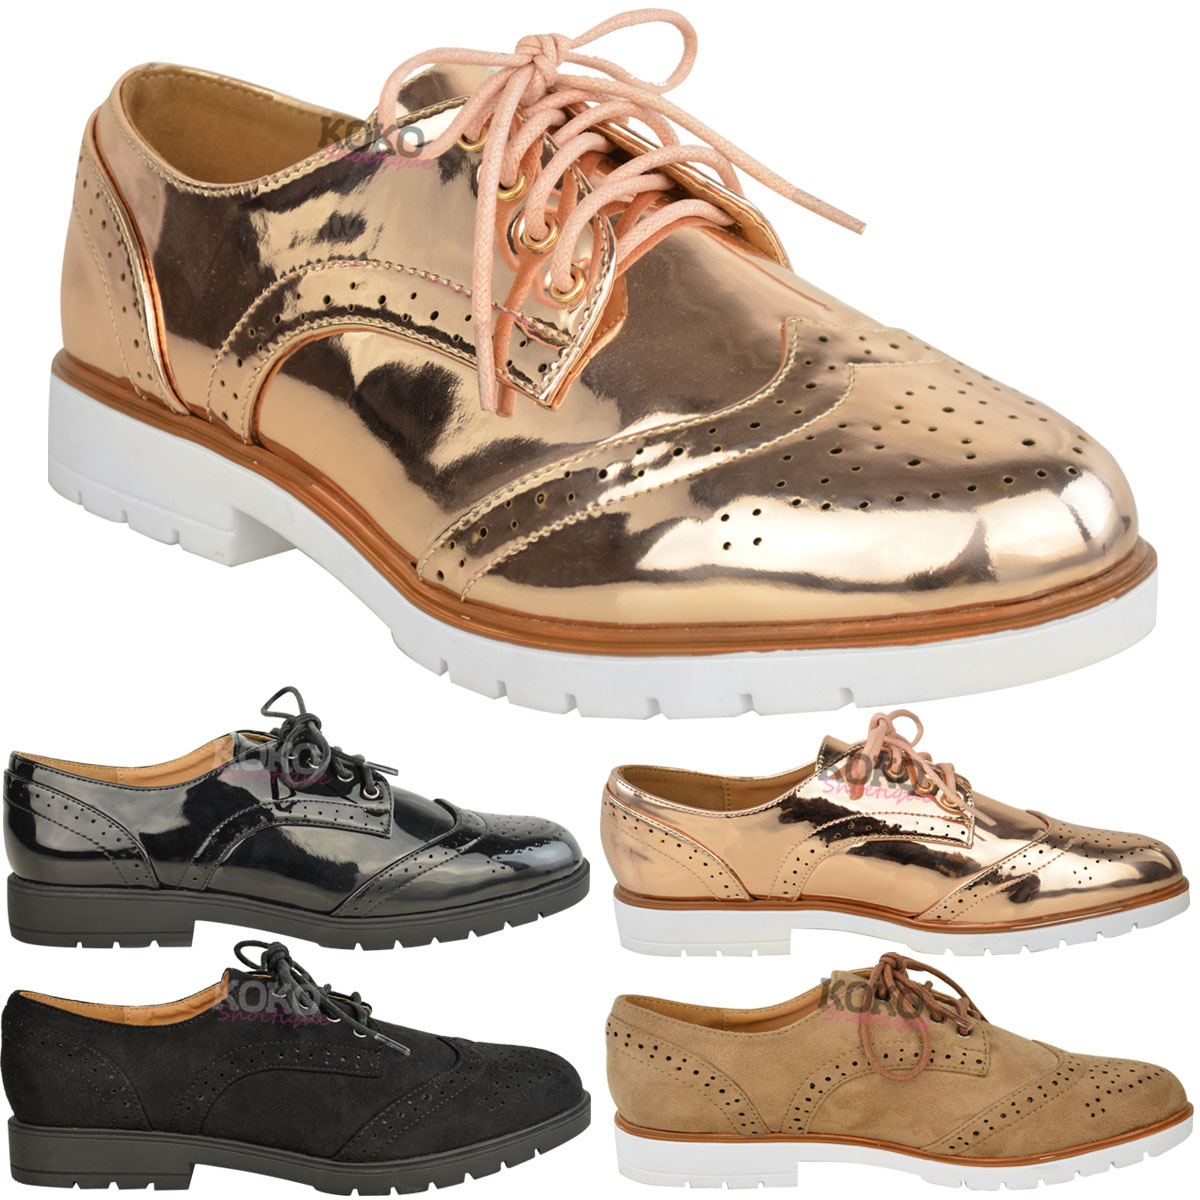 Find great deals on eBay for womens lace up brogues. Shop with confidence.